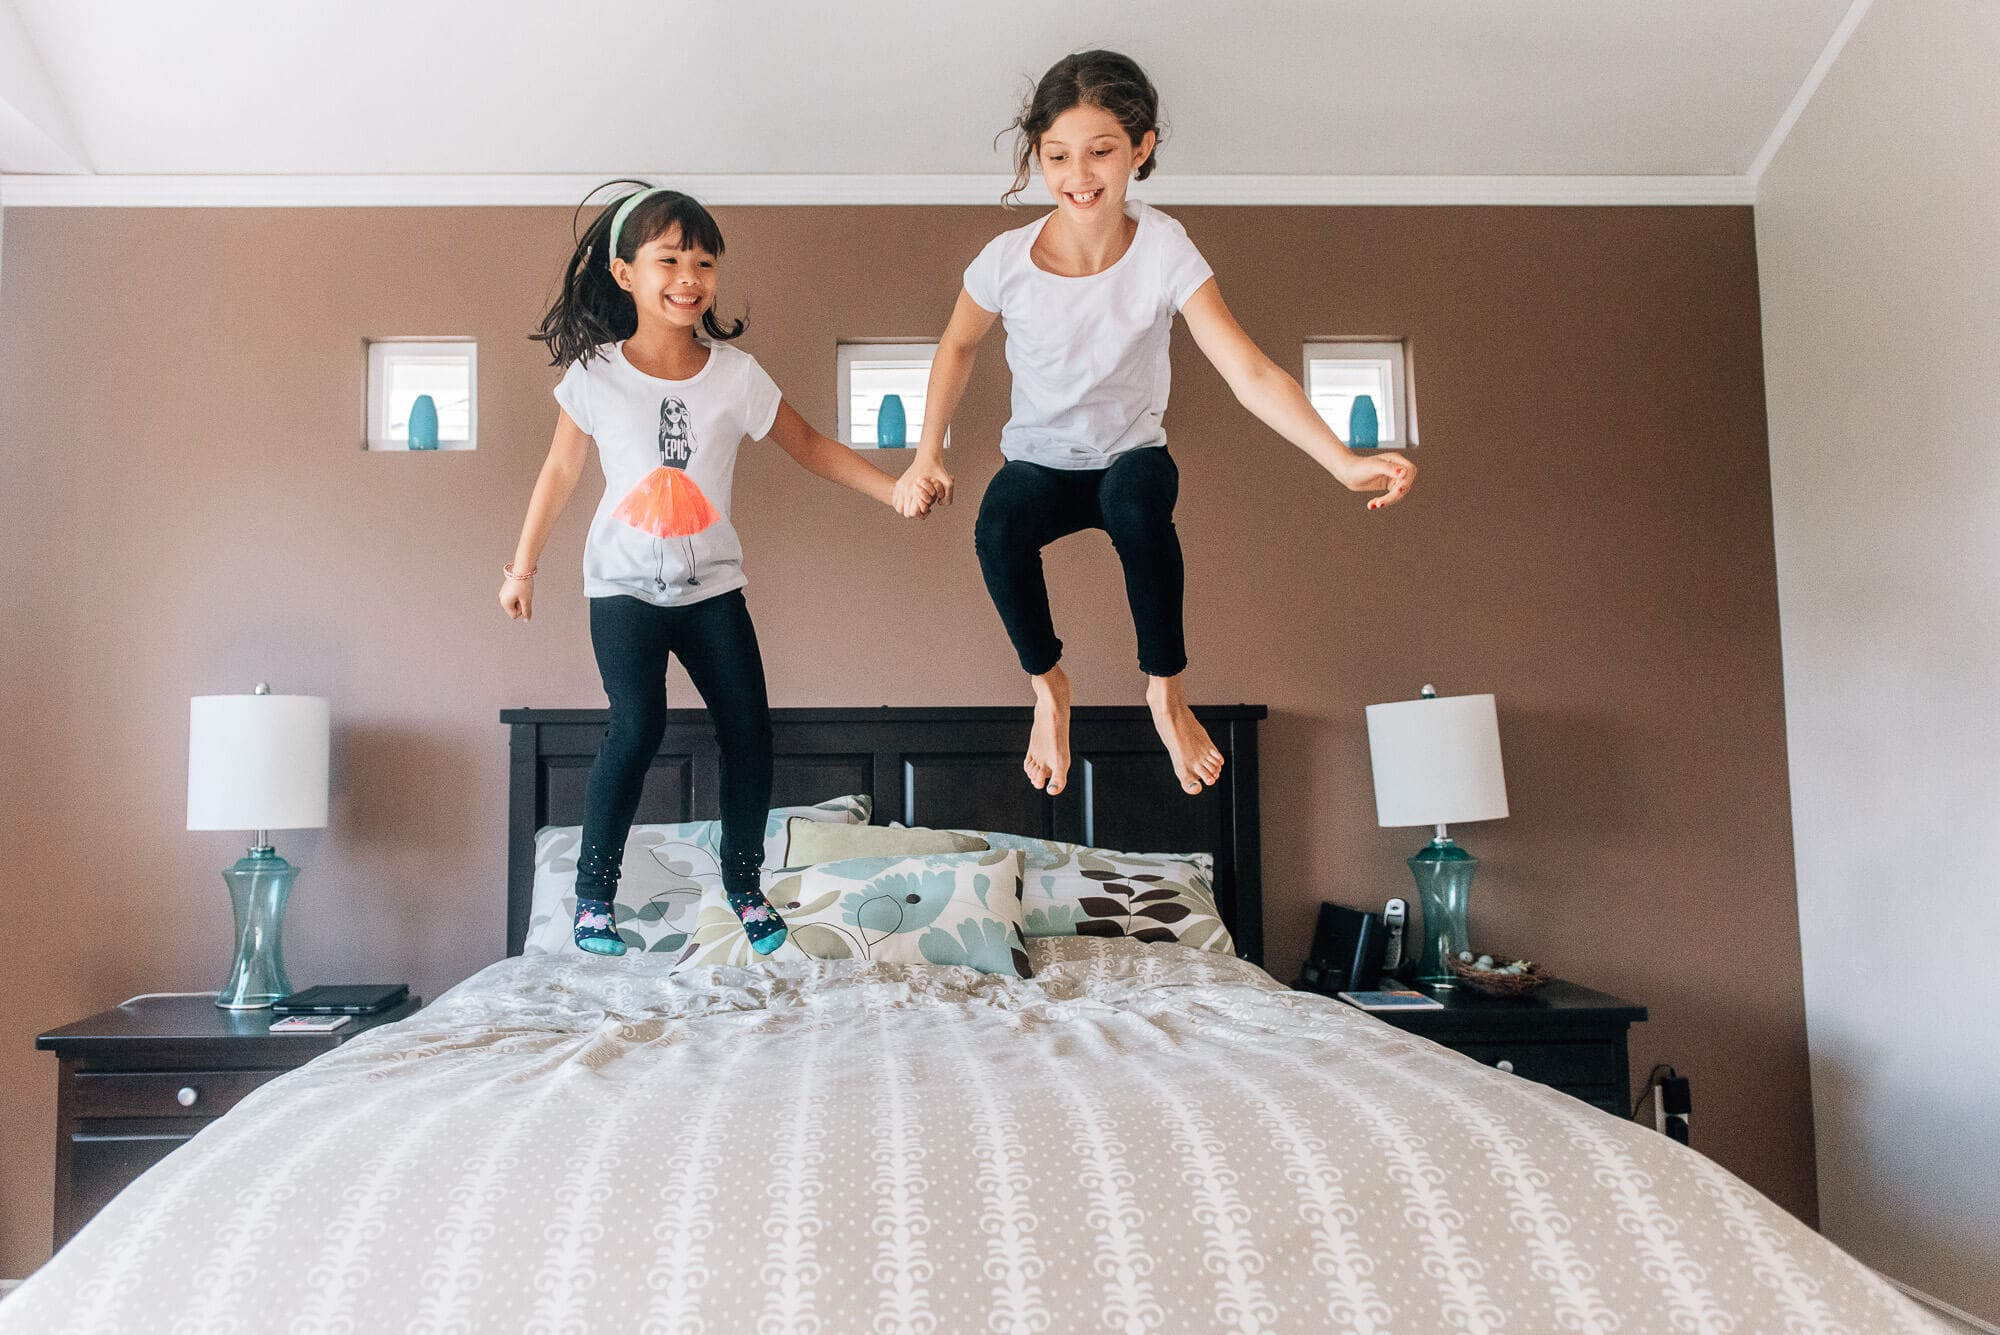 two girls jumping high on a bed